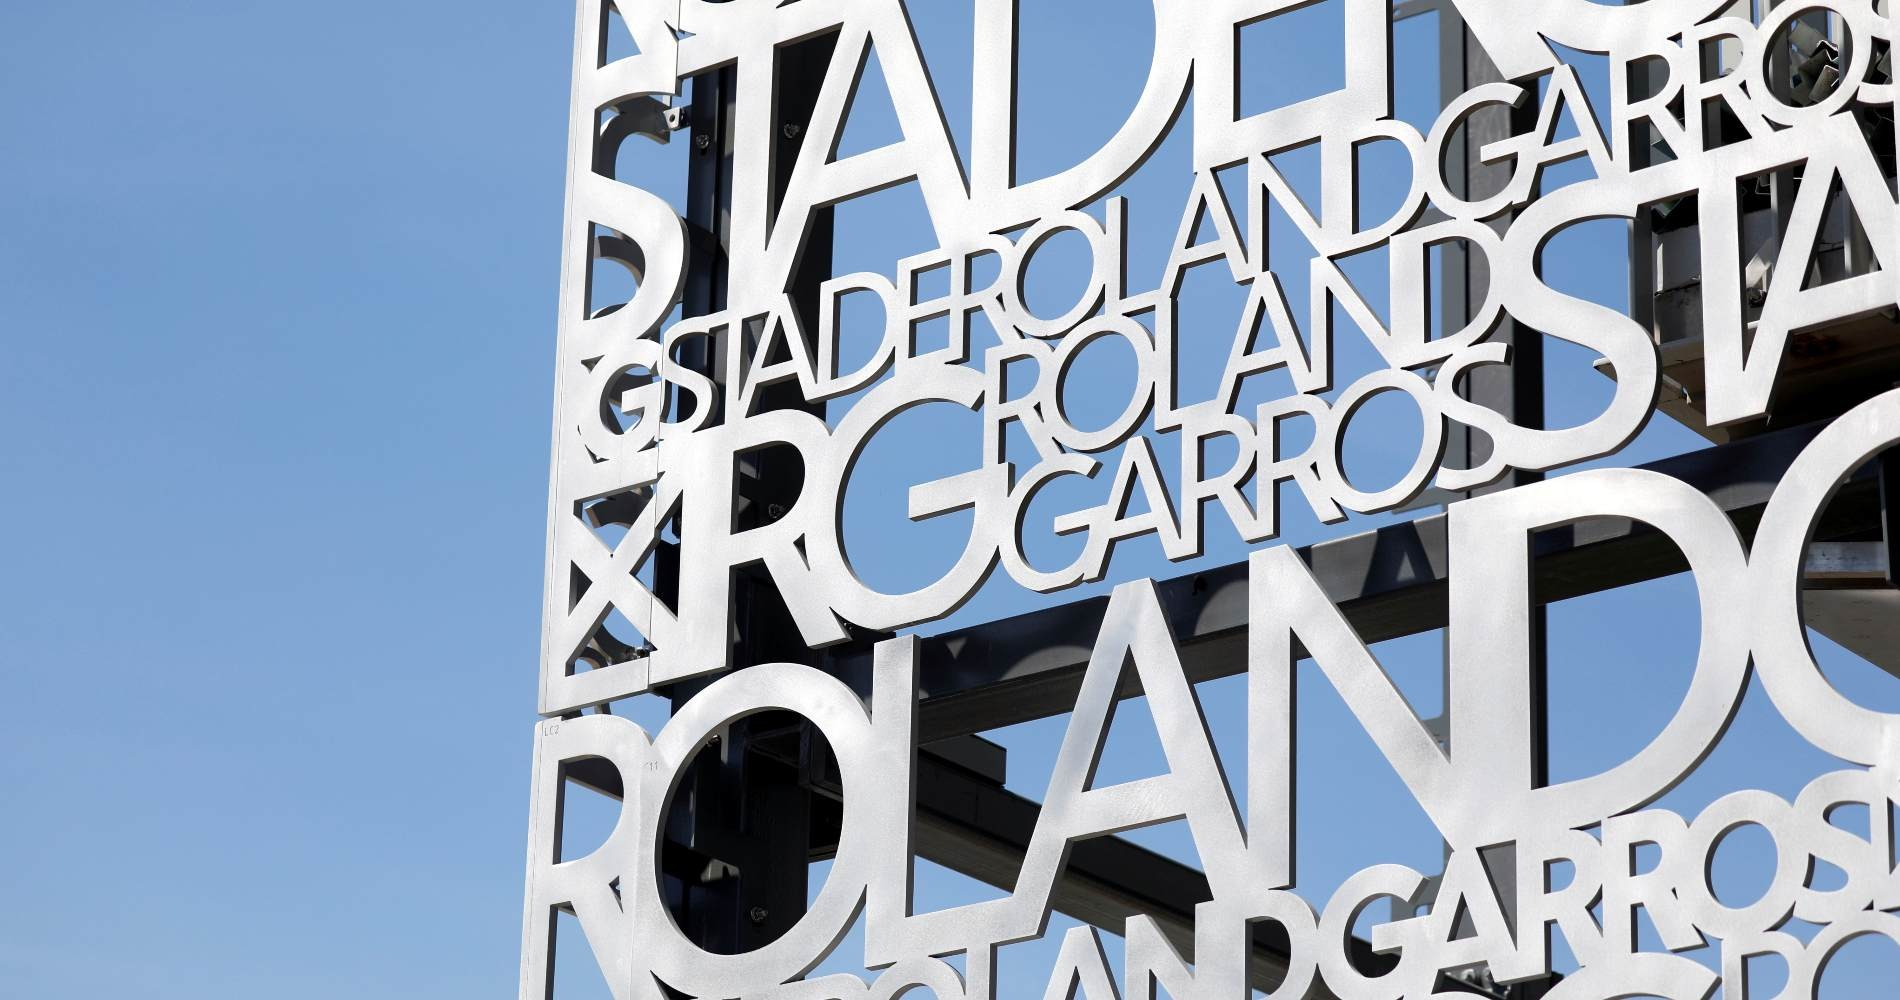 The site of Roland-Garros has been renovated during the last couple of years